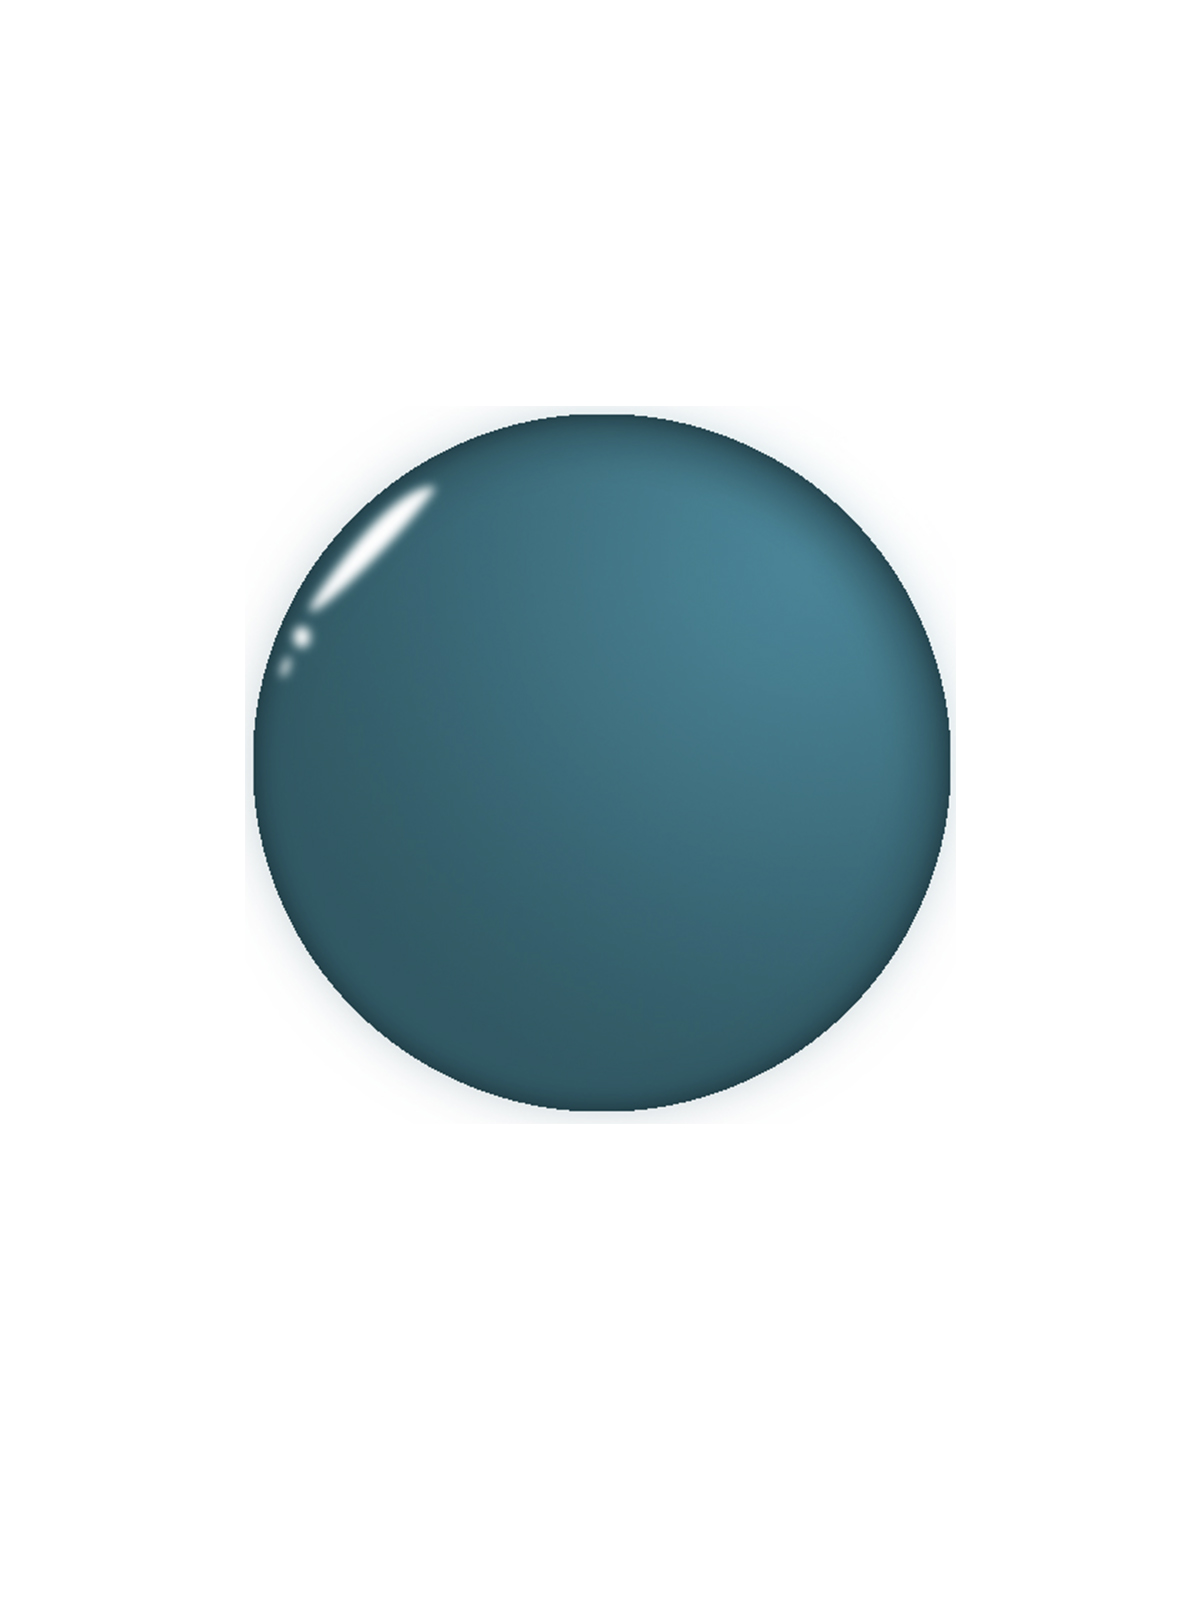 Paint swatch of Galápagos Turquoise by Benjamin Moore